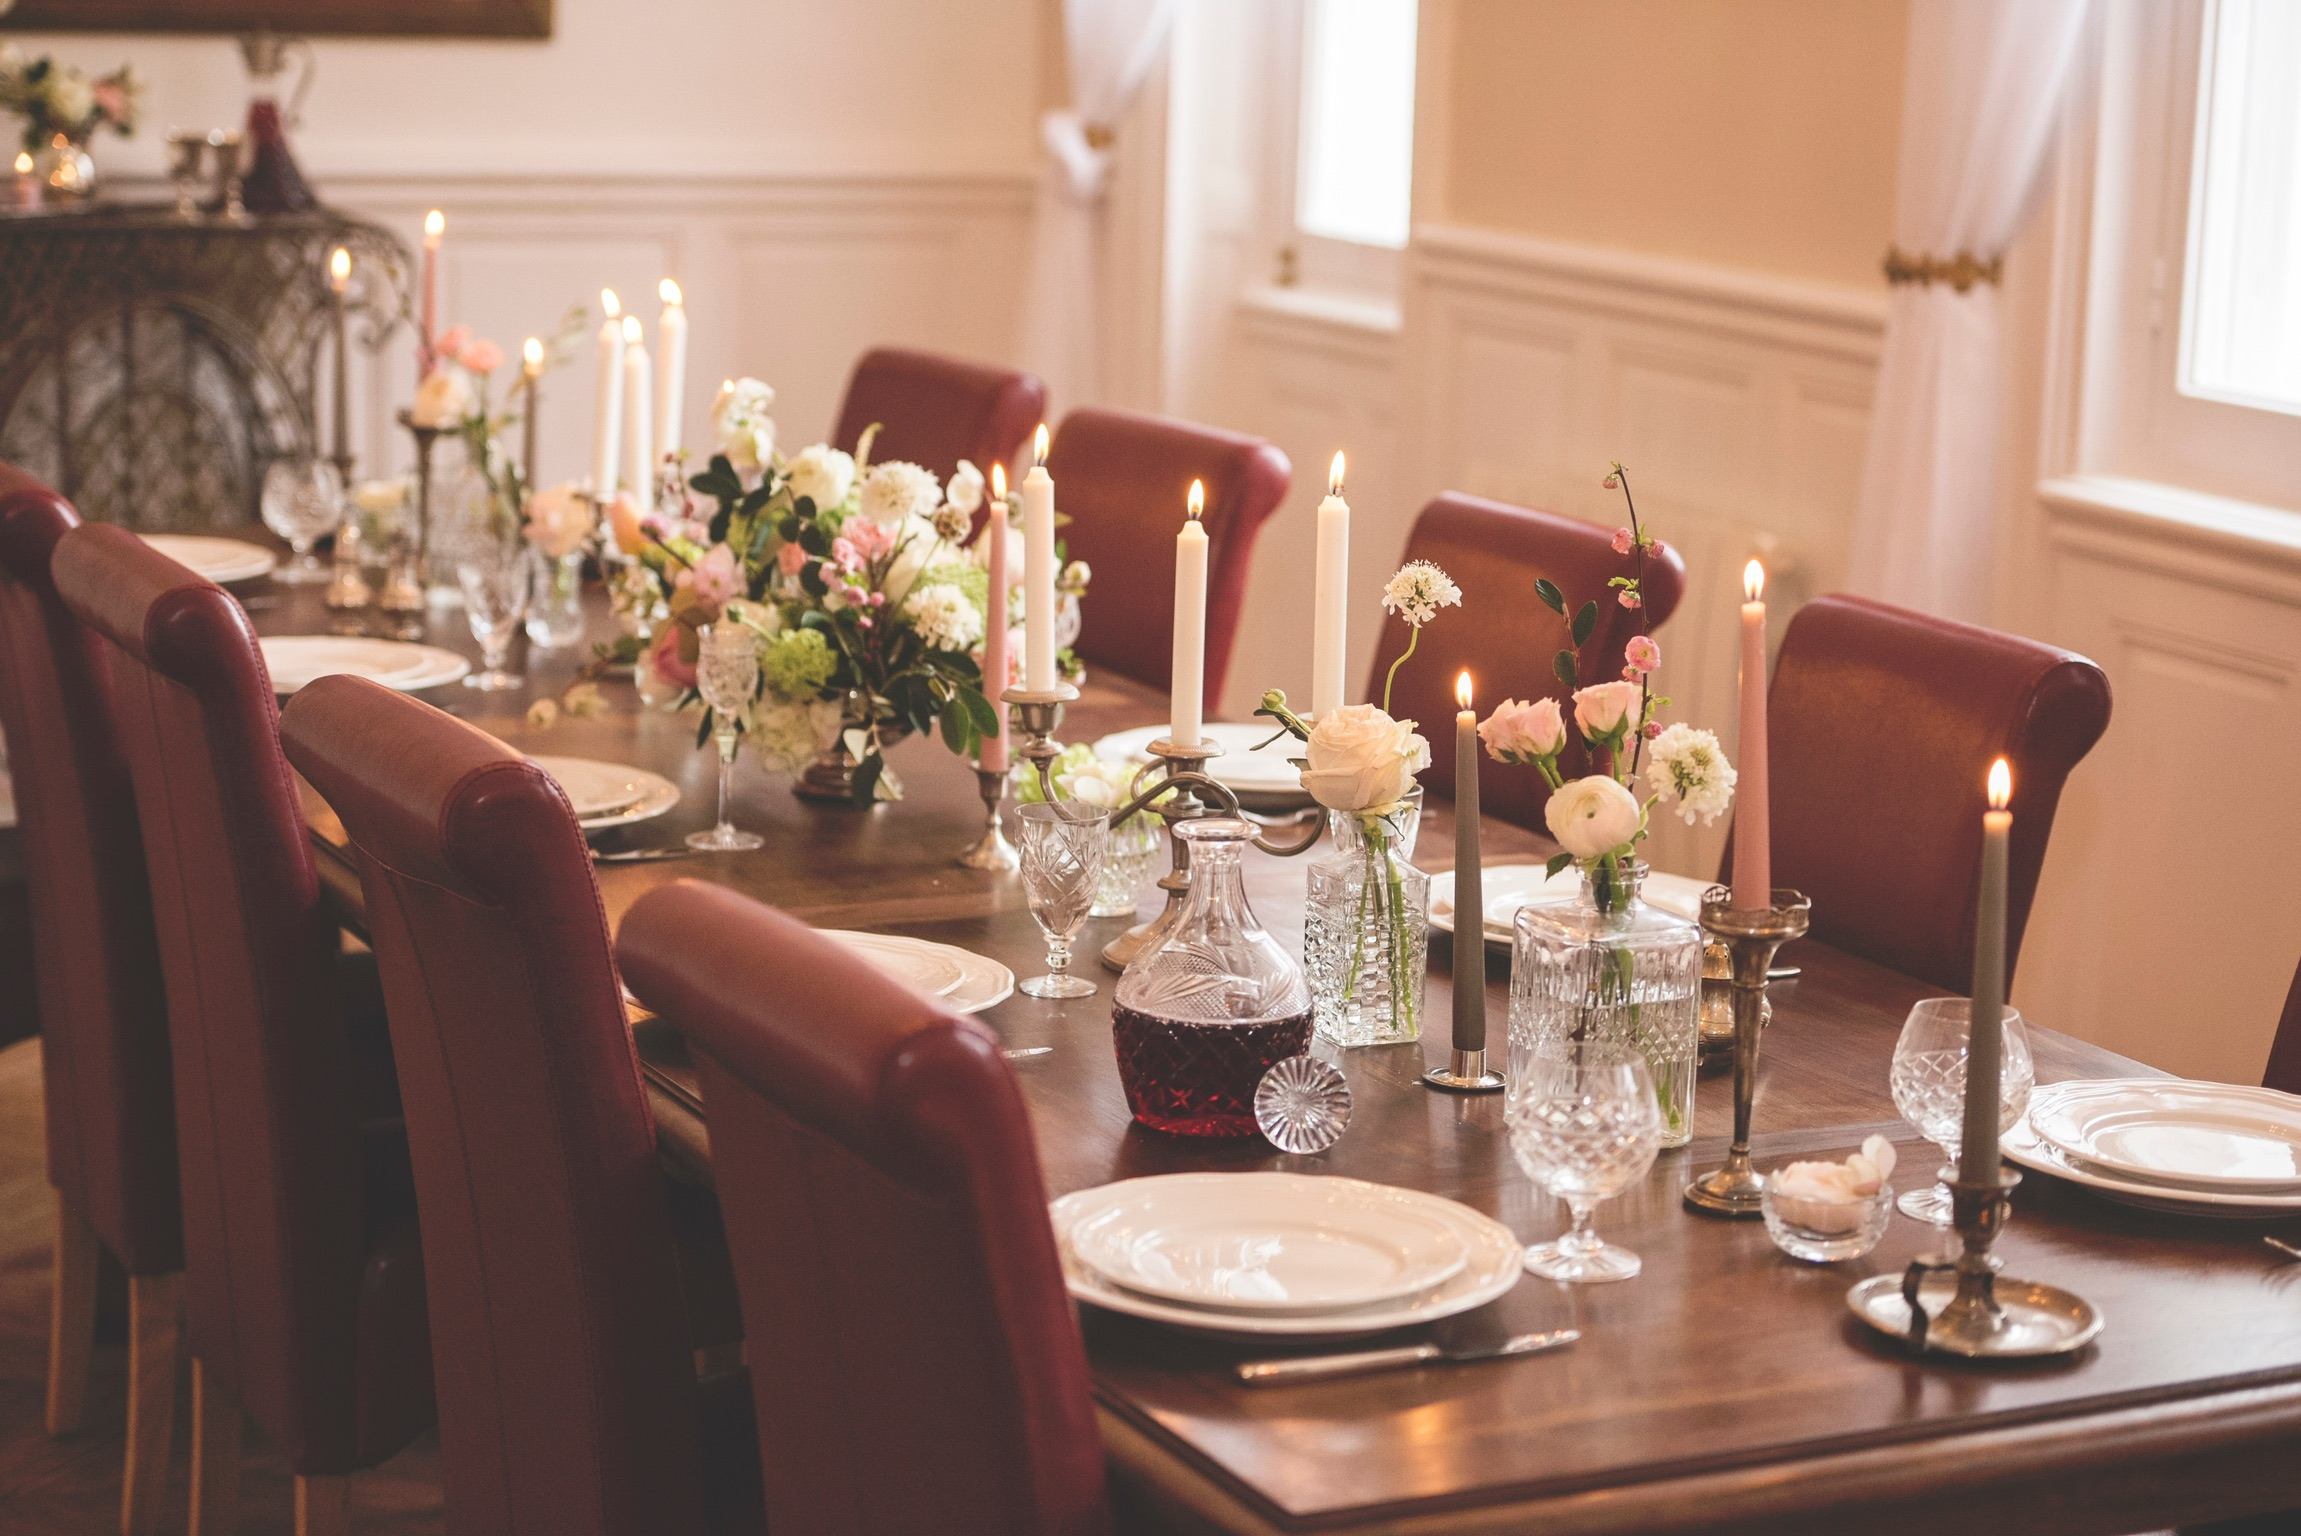 Wedding dinner in French chateau